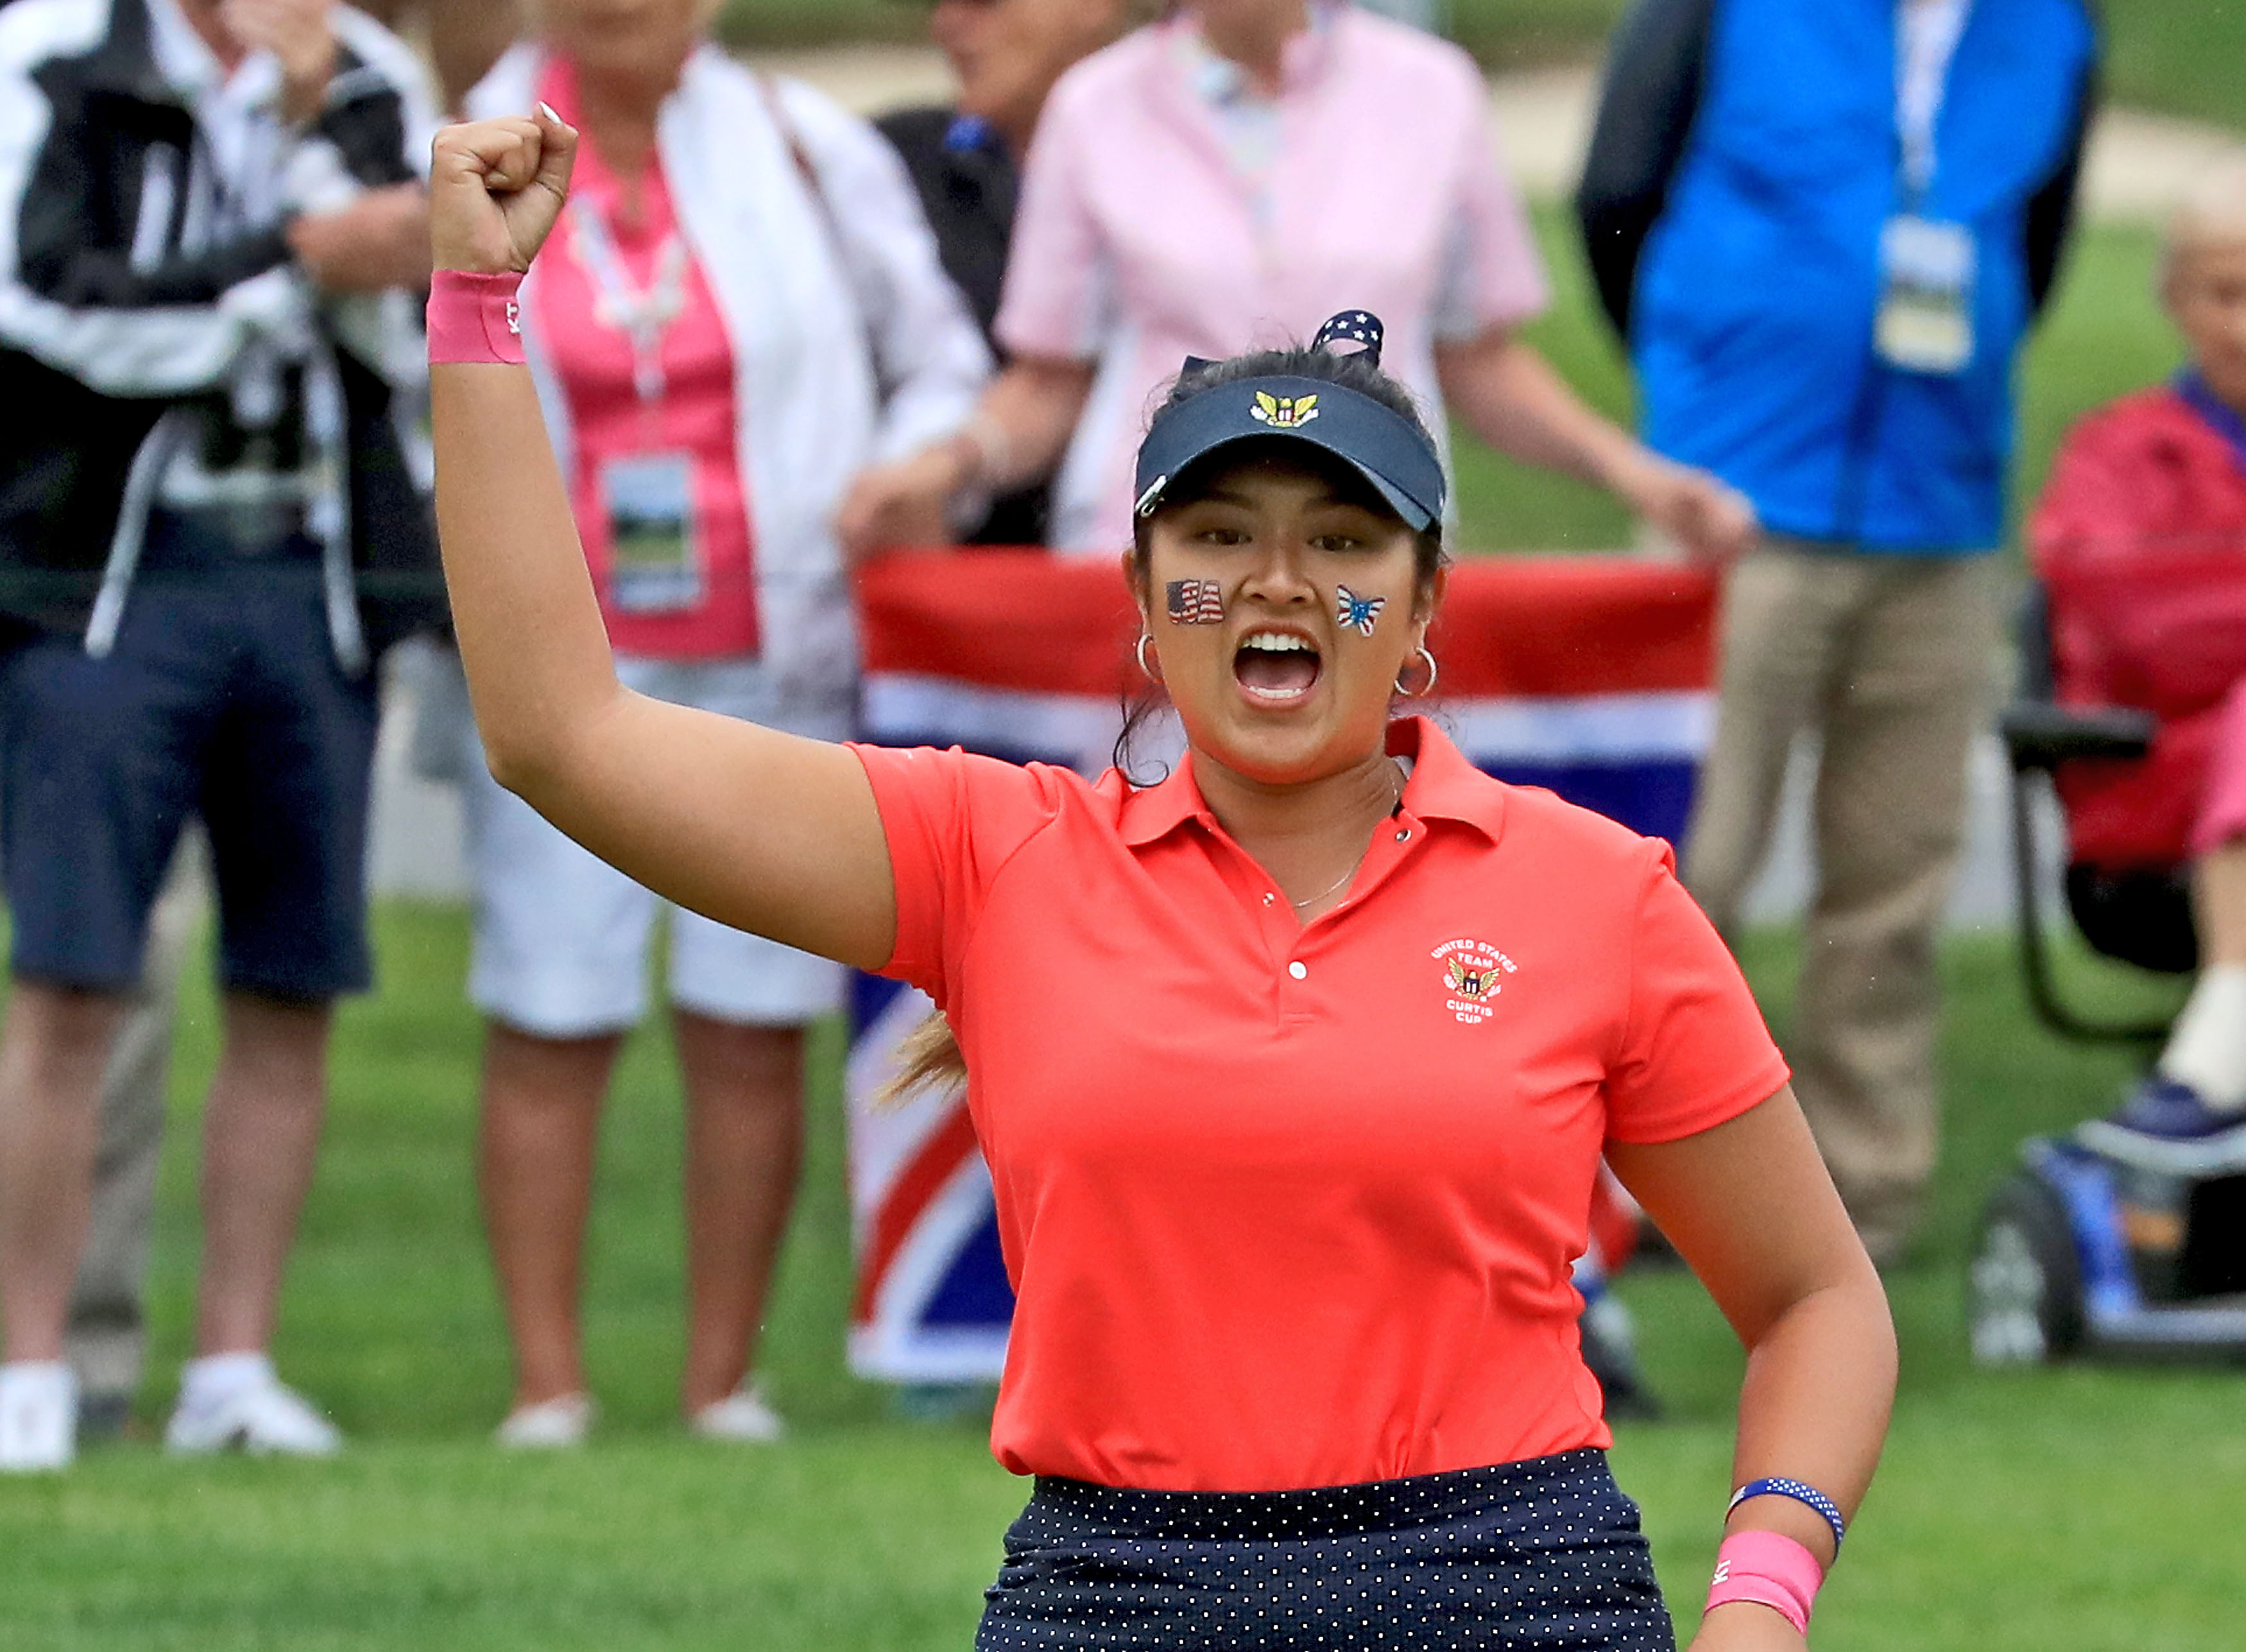 SCARSDALE, NY - JUNE 10: Lilia Vu of the United States team celebrates holing a birdoe putt on the 18th hole to win her match by one hole against Sophie Lamb of the Great Britain and Ireland team during the final day singles matches in the 2018 Curtis Cup Match at Quaker Ridge Golf Club on June 10, 2018 in Scarsdale, New York. (Photo by David Cannon/Getty Images)